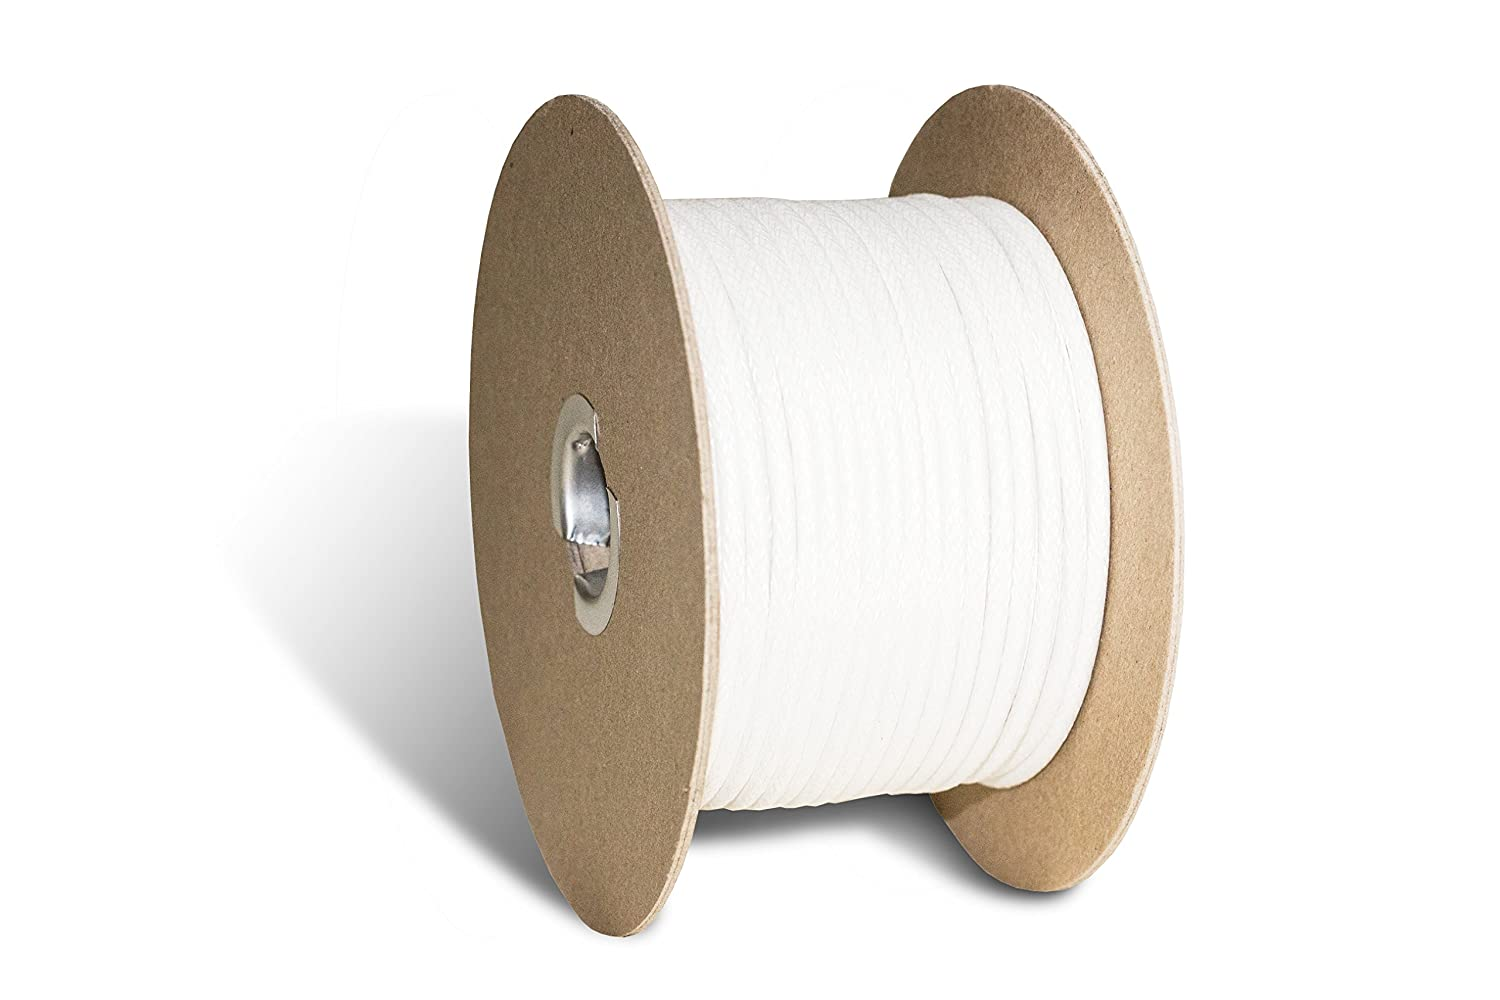 5//32 Sewing Polyester Welt Cord Cellulose Piping 50-Yard